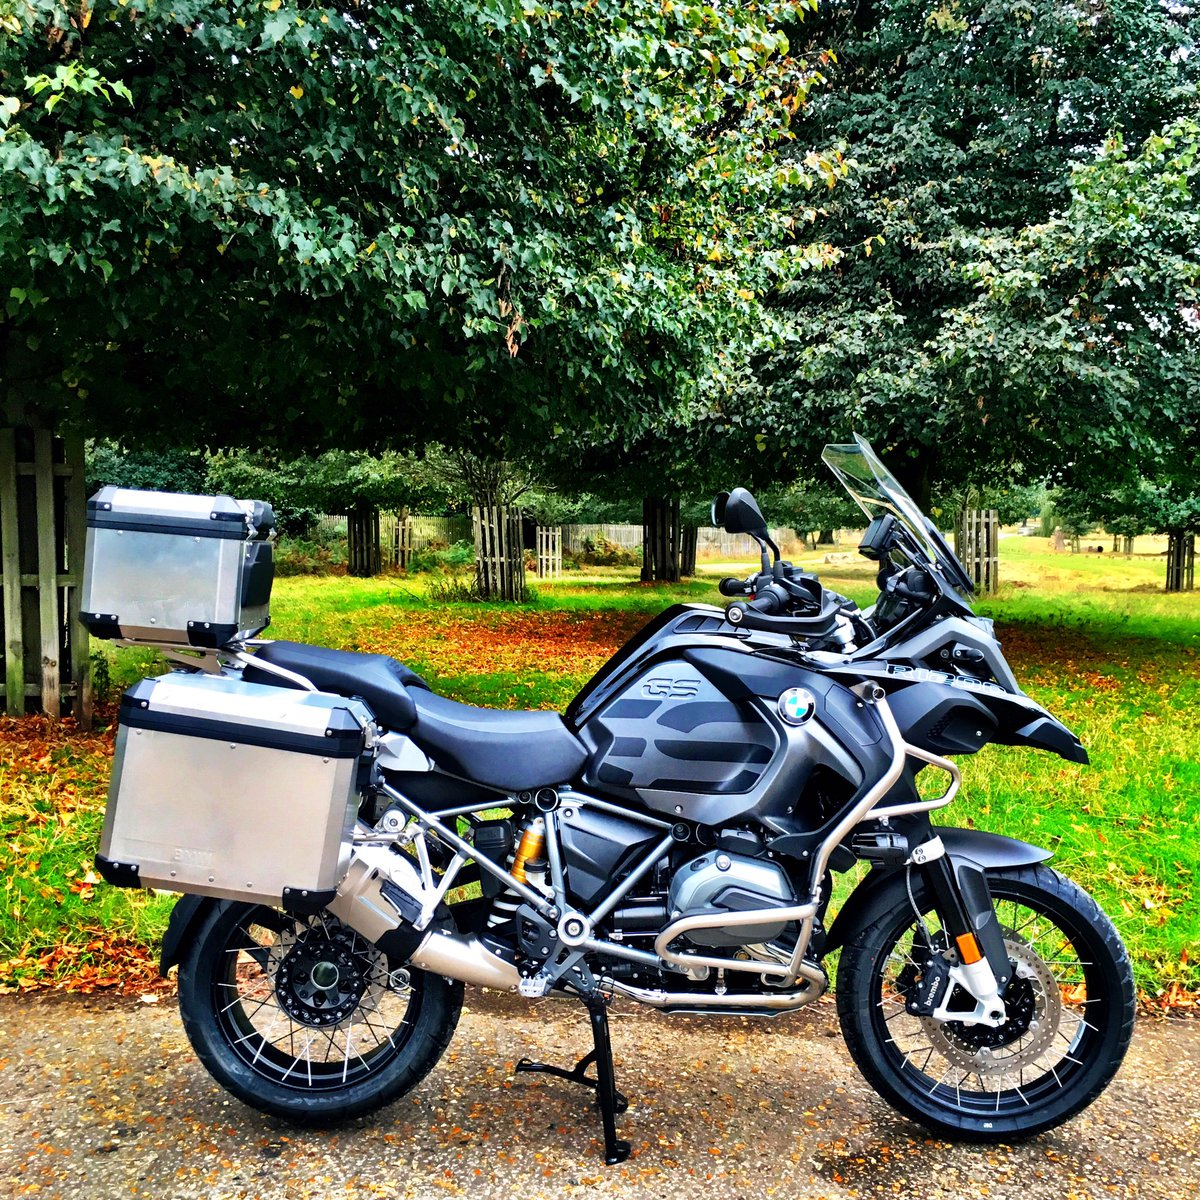 Brand new triple black BMW1200GS stolen in West London at 1.30pm this afternoon Reg begins GC11 https://t.co/hHzl1Dohmb